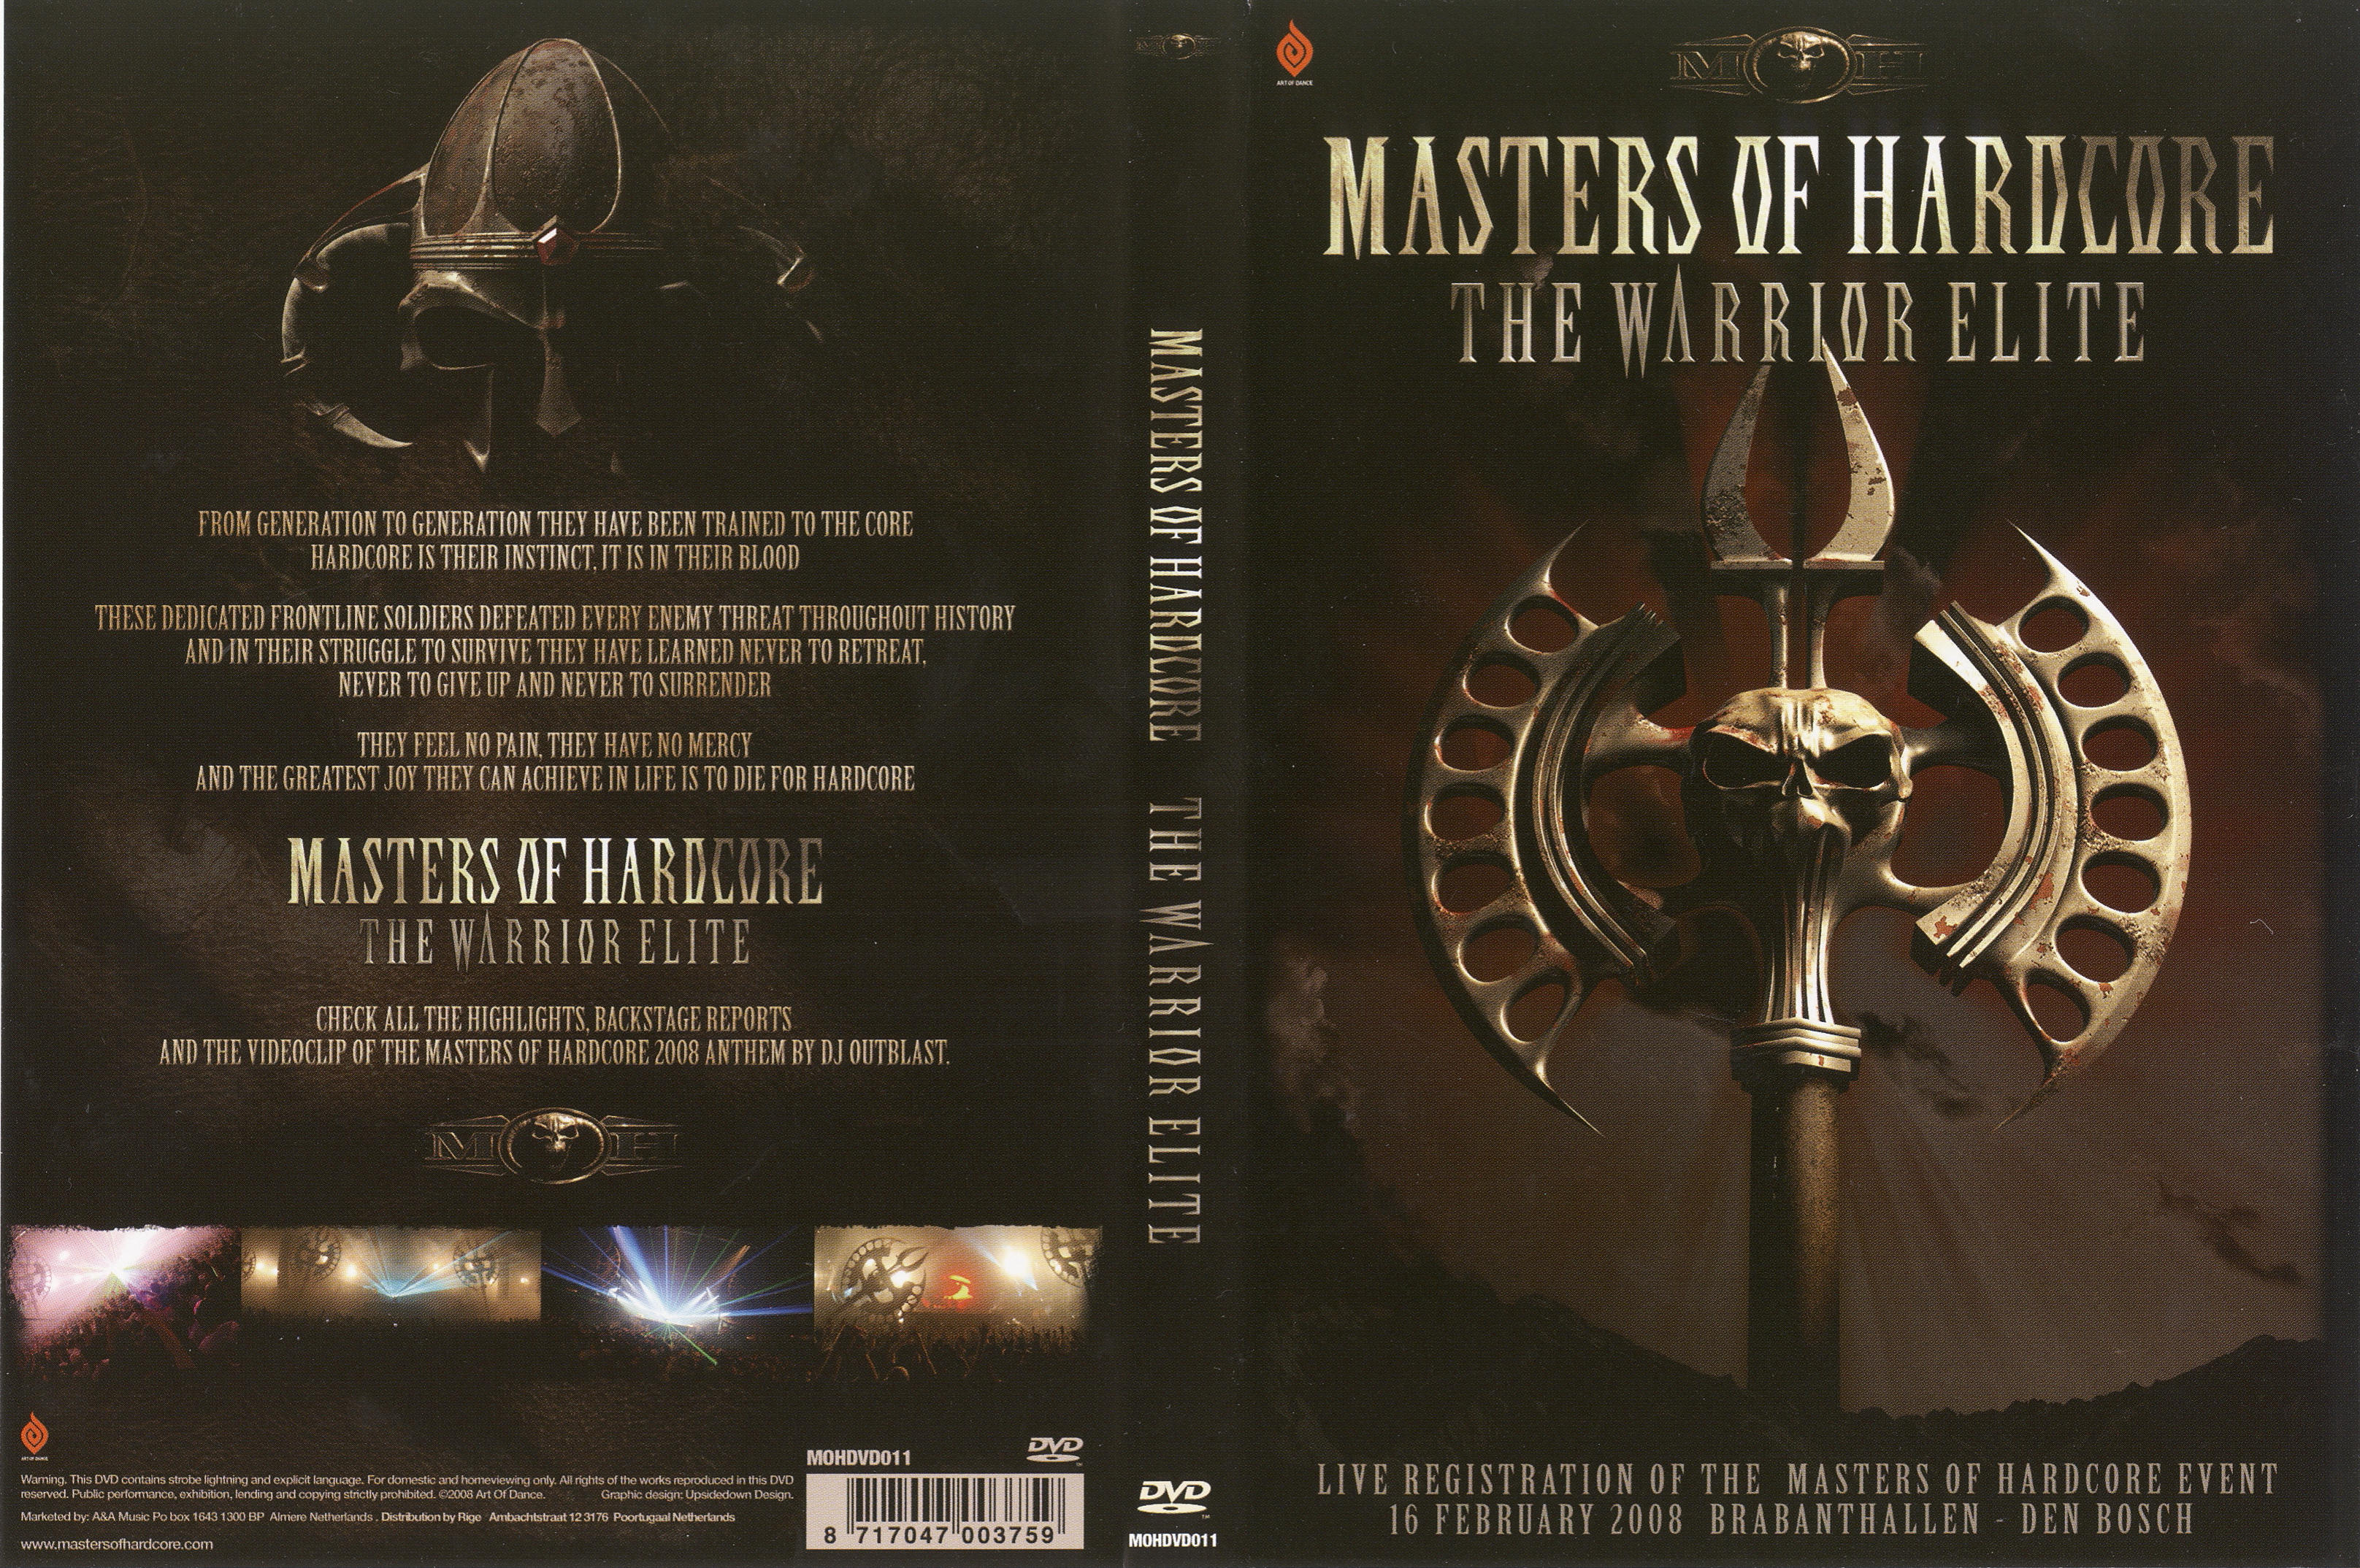 Masters of hardcore the warrior nackt video